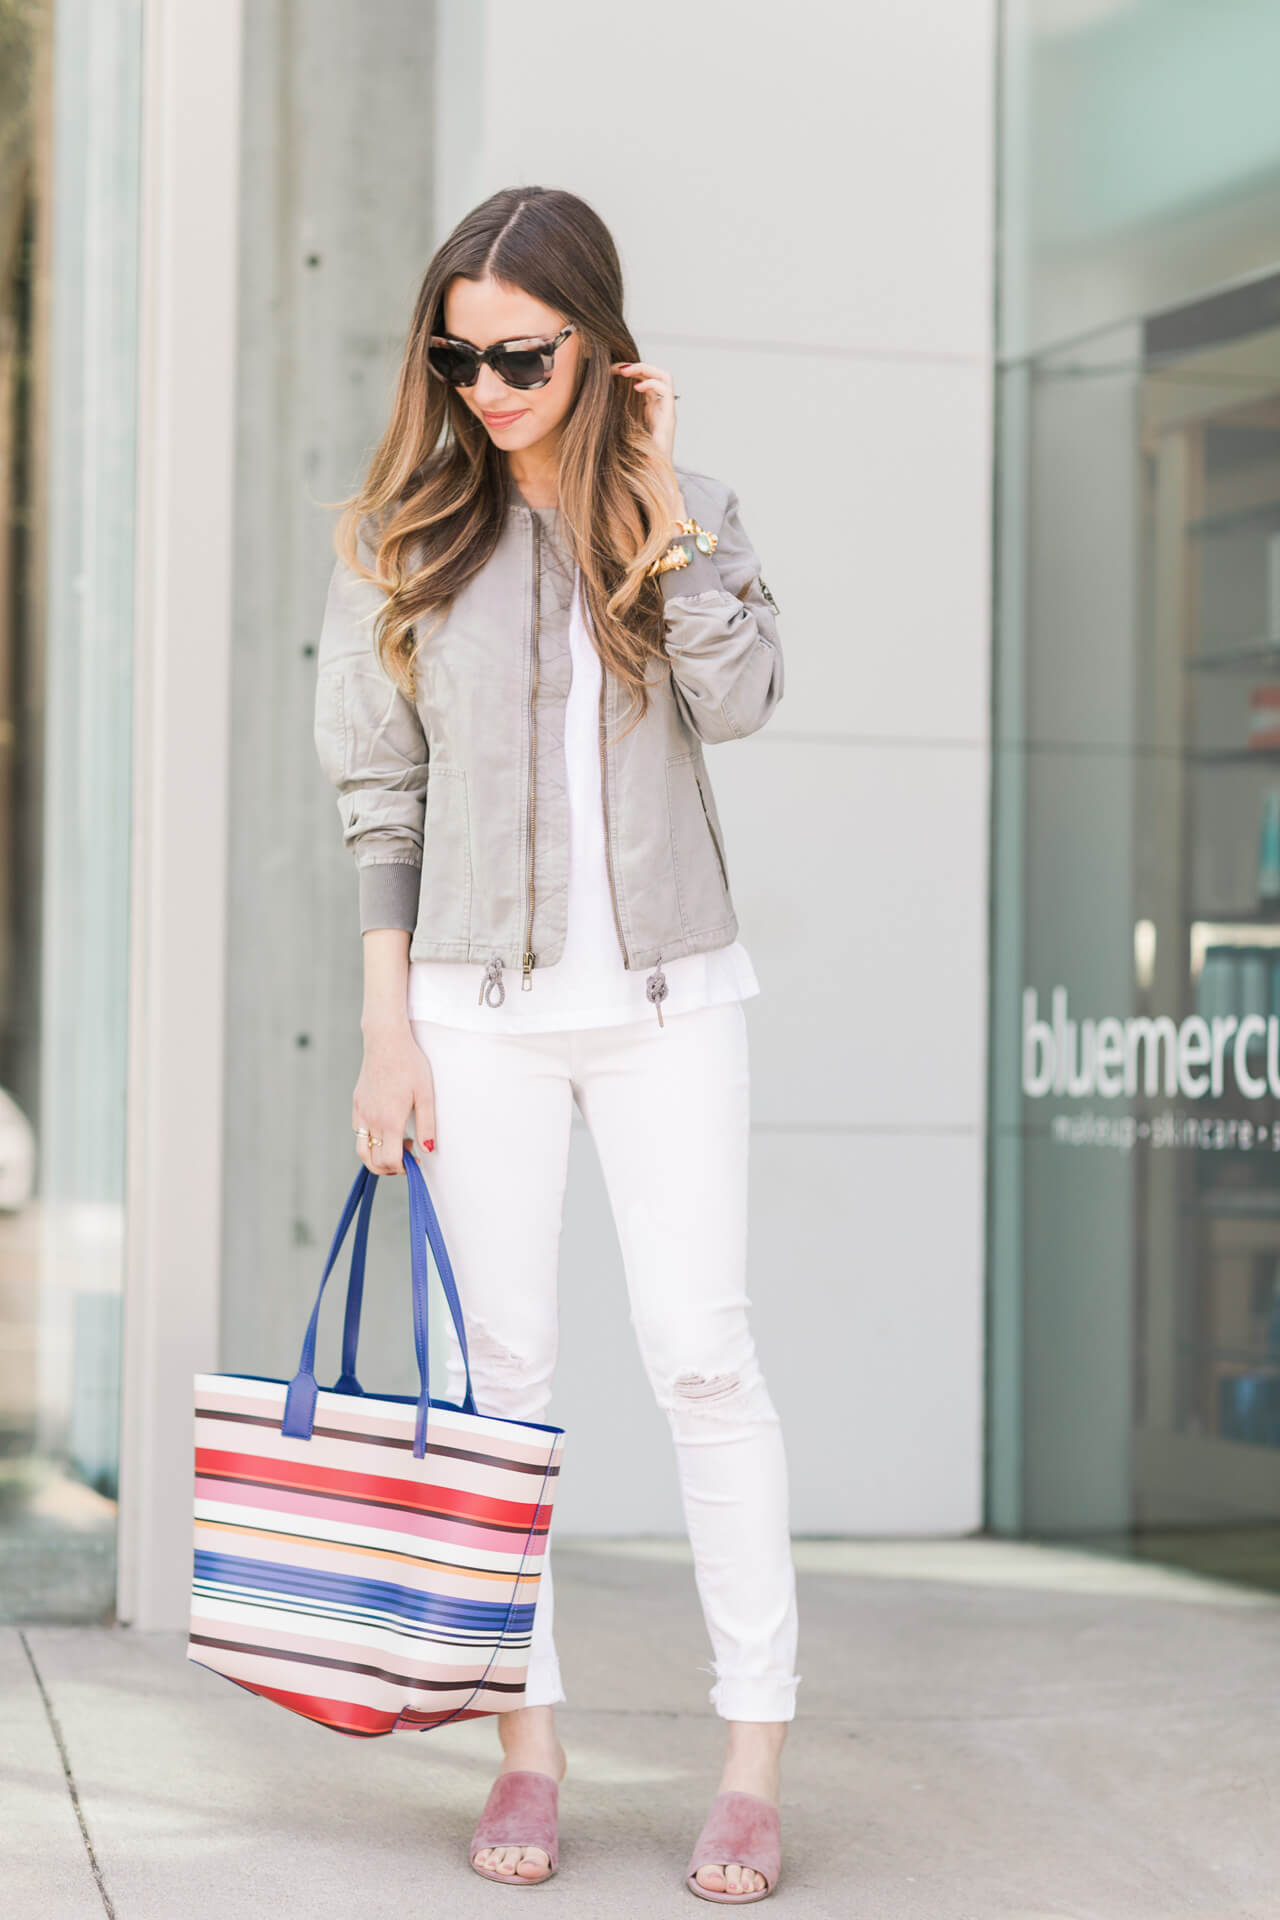 white outfit with gray bomber jacket and striped tote bag